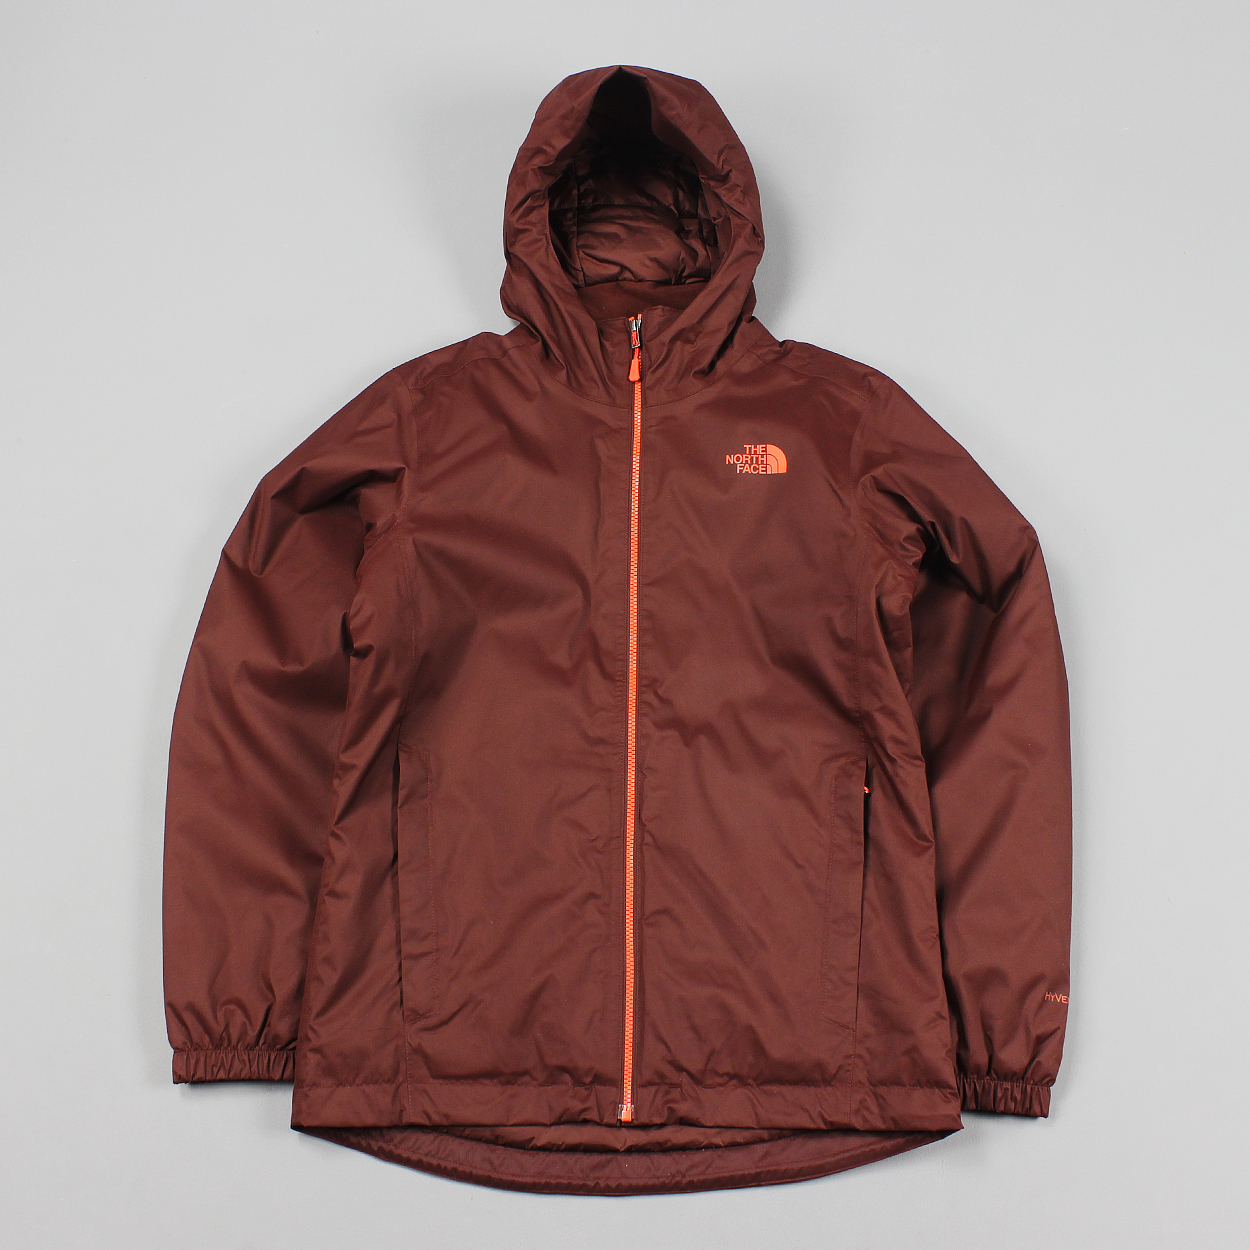 The North Face Mens Quest Insulated Coat Jacket Sequence Red £91.00 5452f50d4bb4